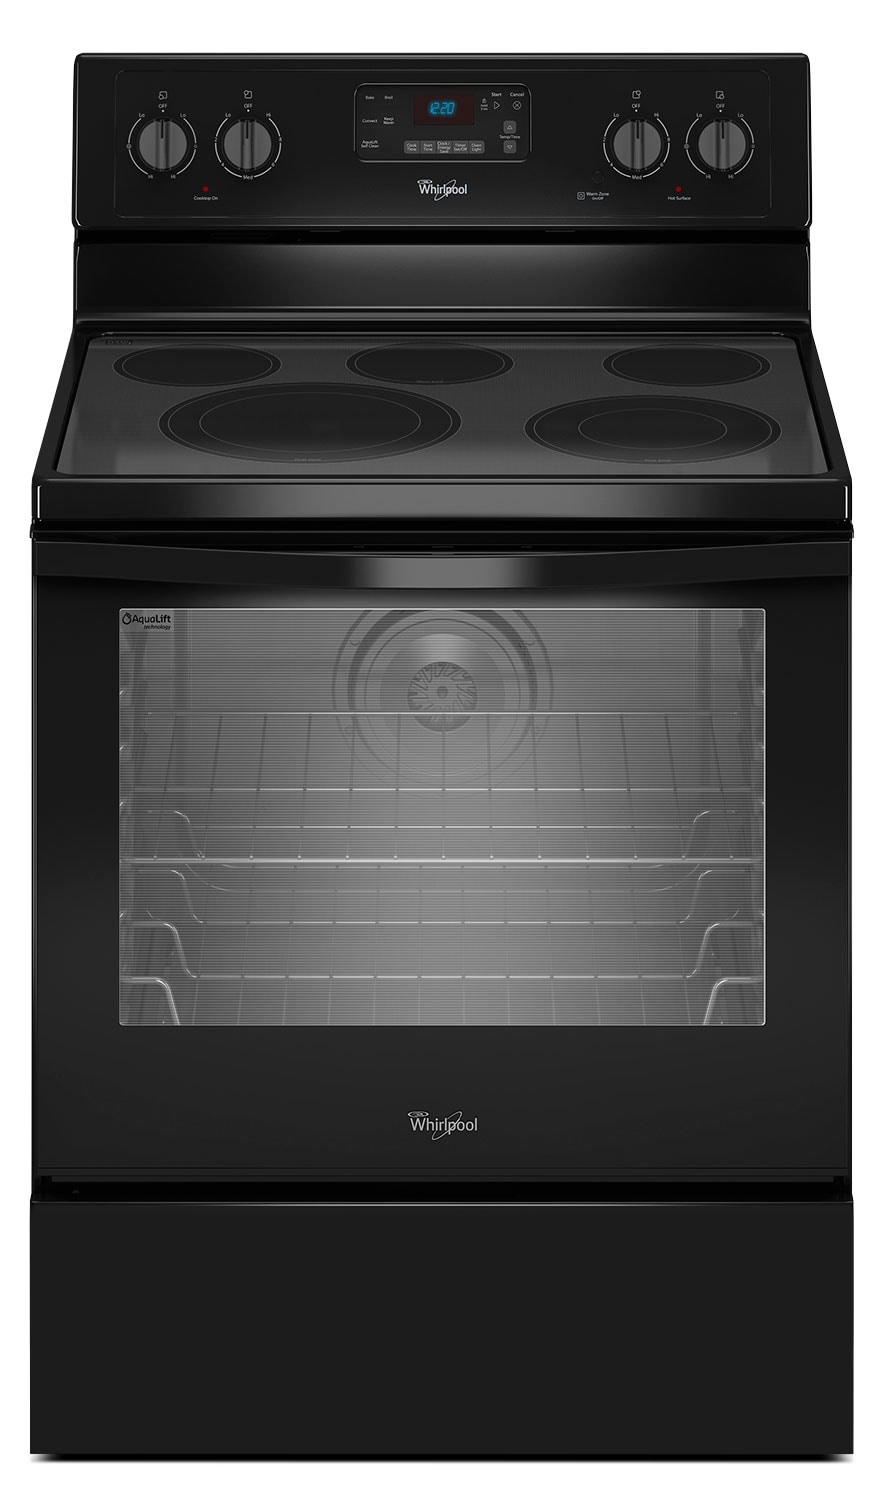 Whirlpool 6.4 Cu. Ft. Electric Range with AquaLift® Technology - Black